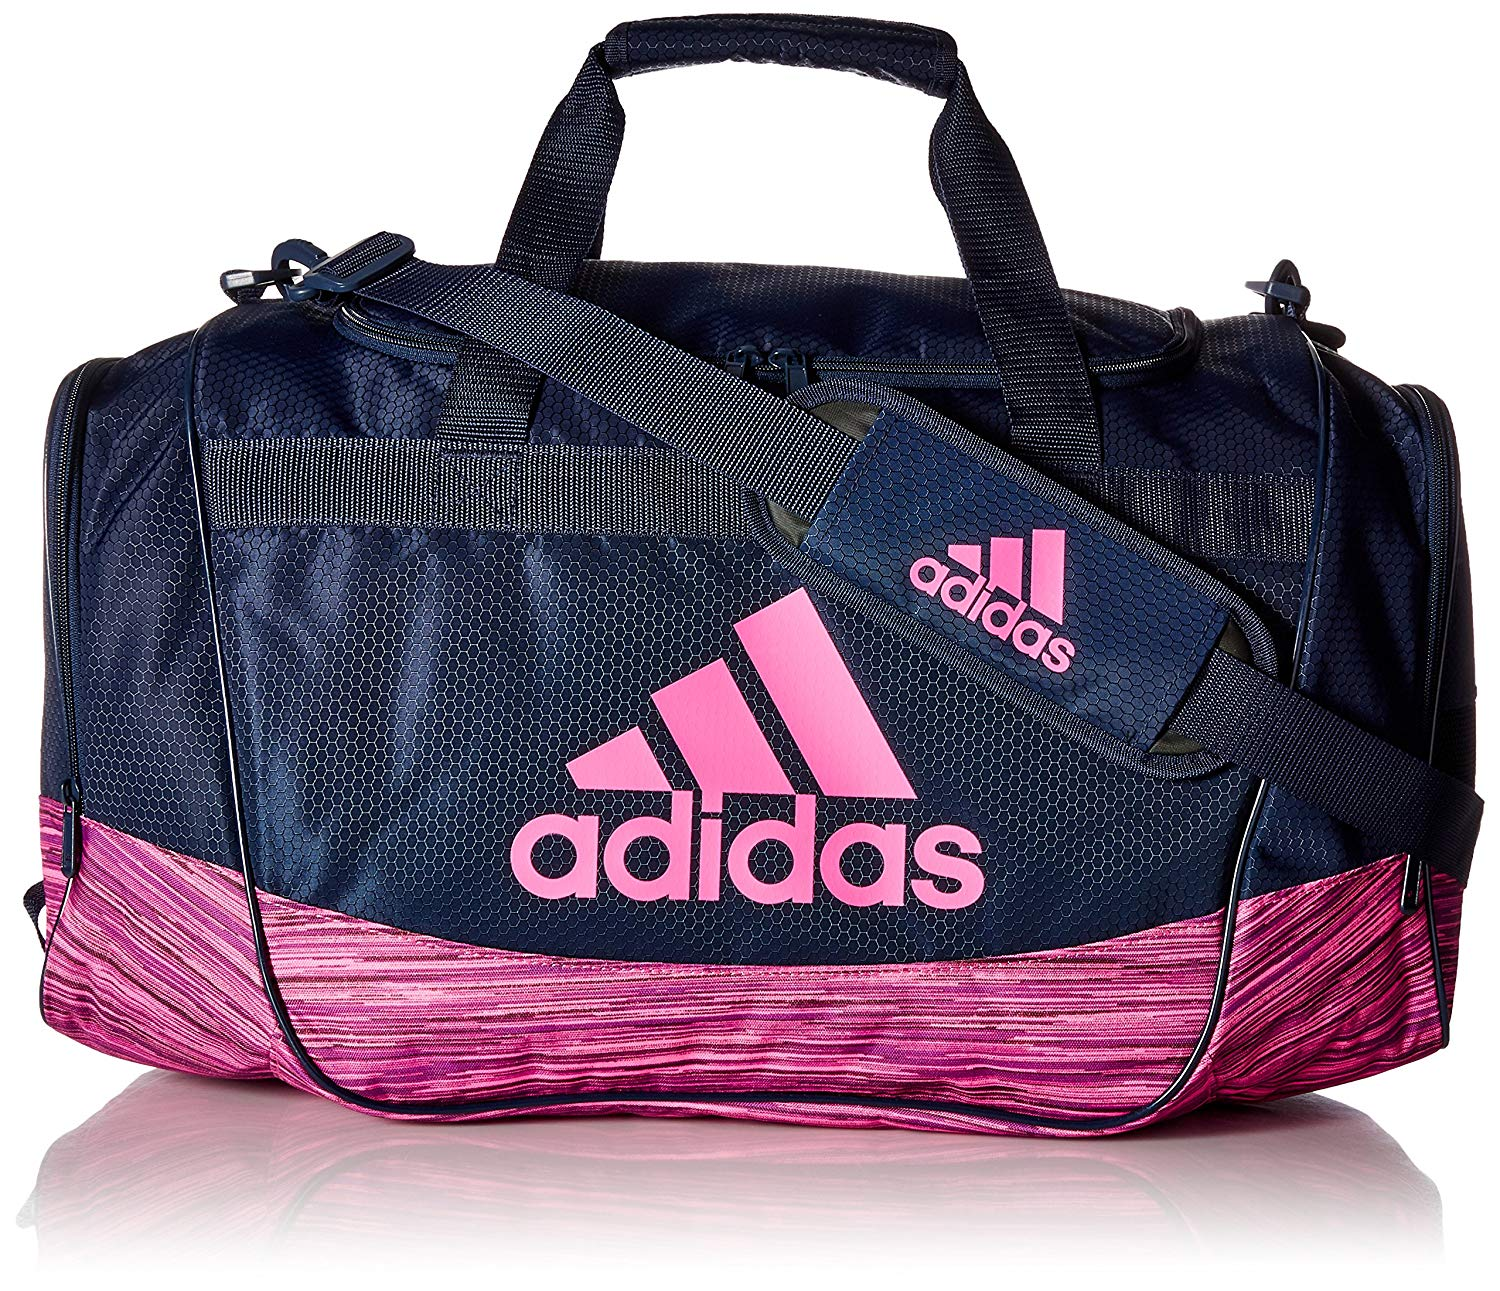 Adidas Defender II Duffel Bag - gym bags